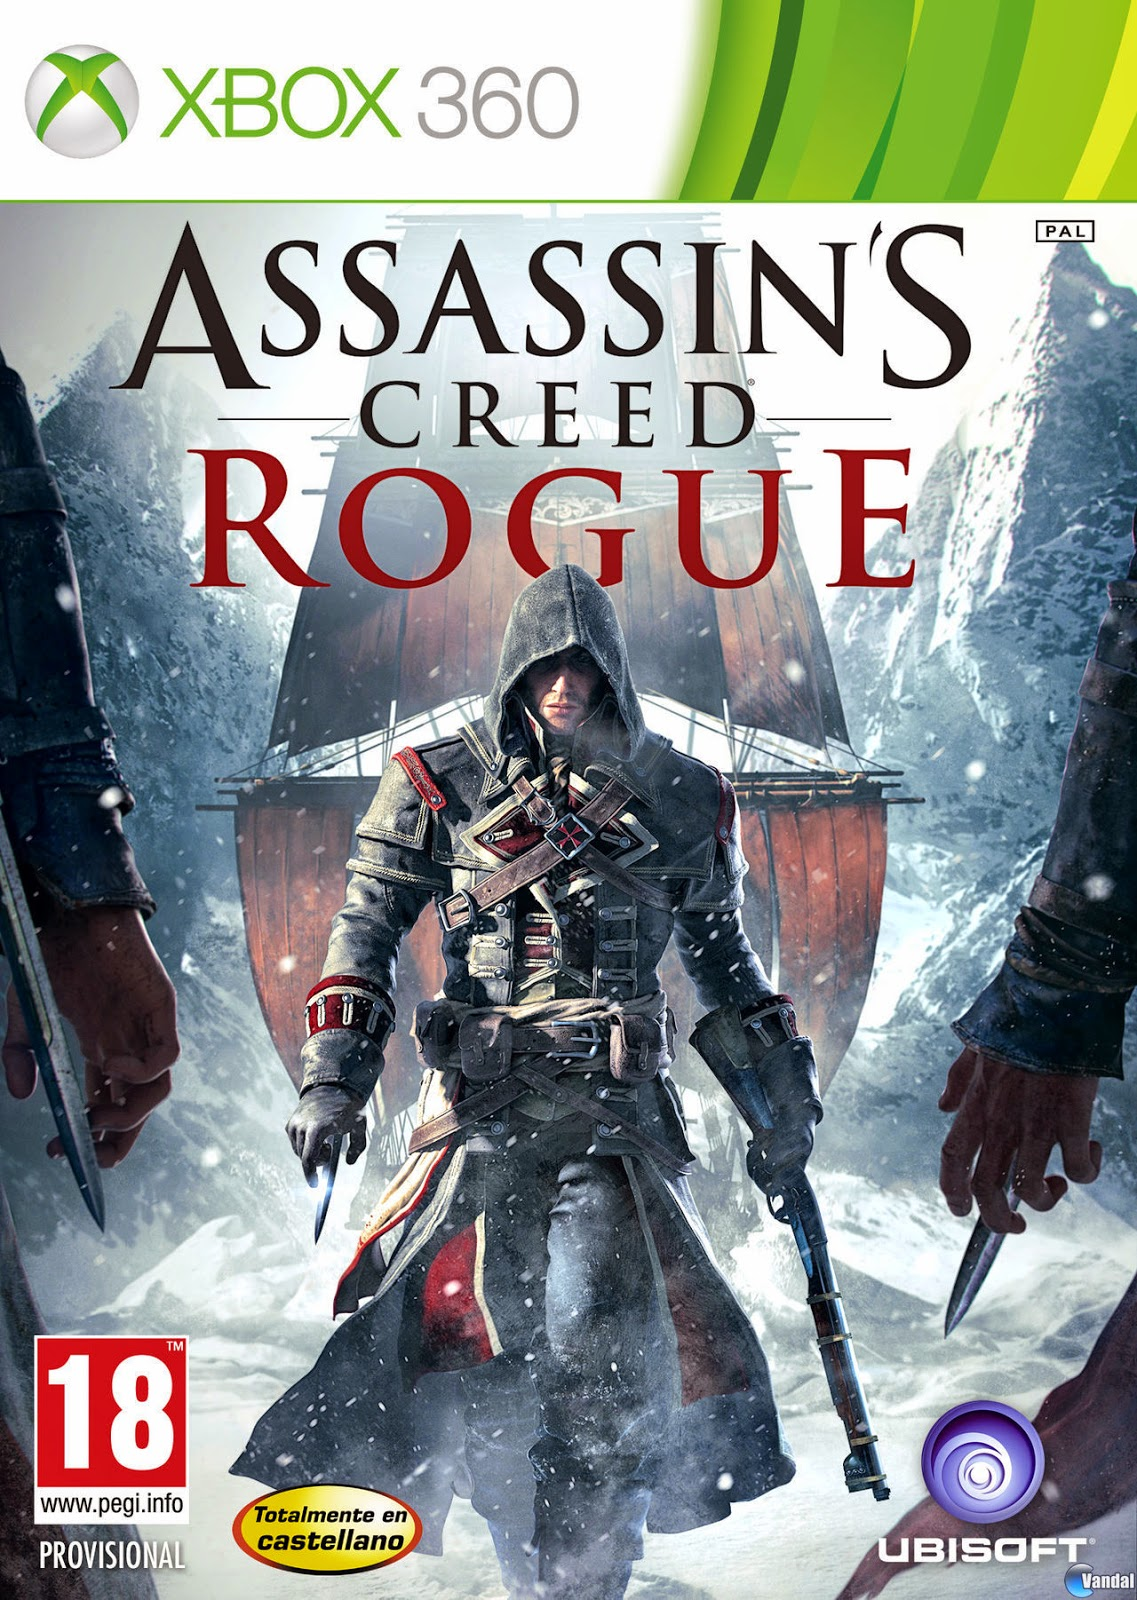 Assassin's Creed Rogue XBOX 360 Cover Caratula